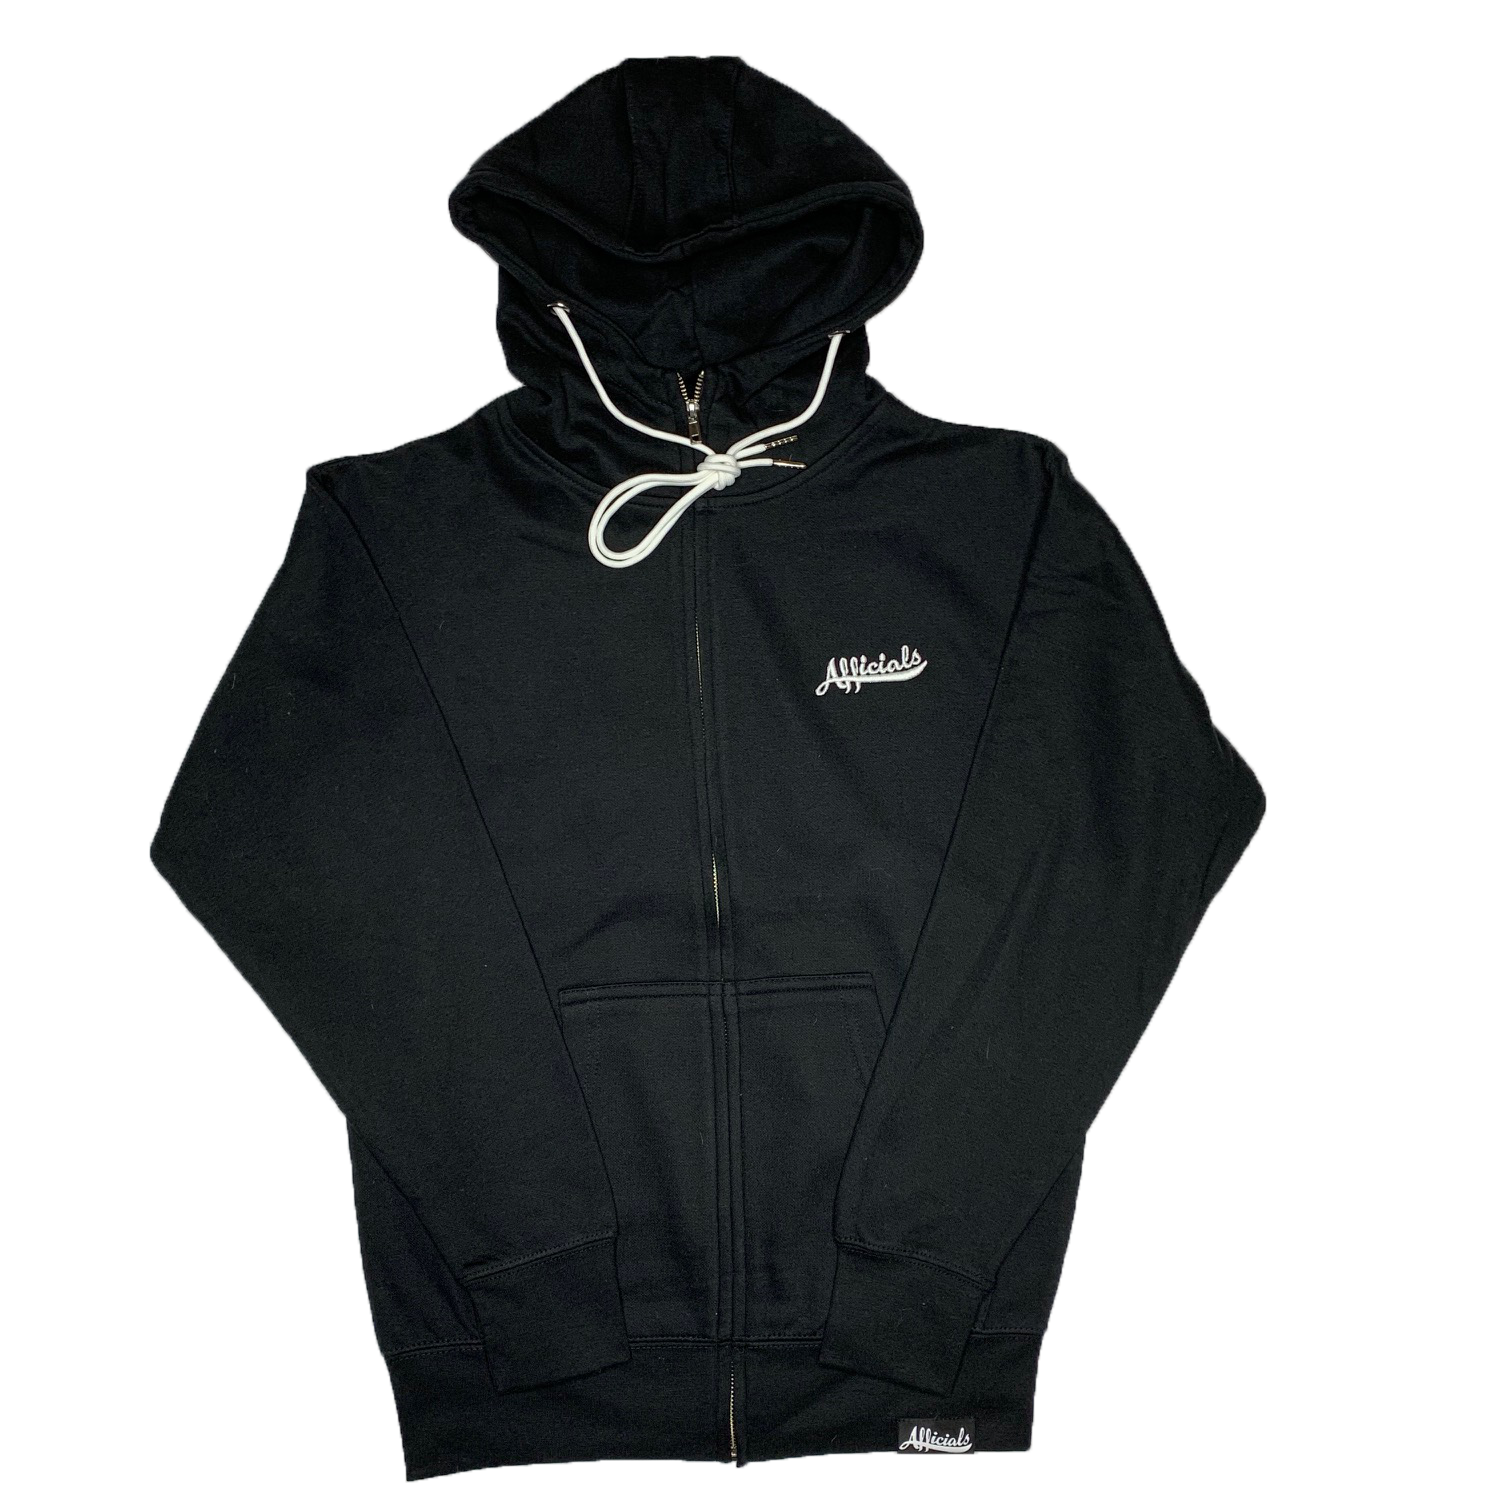 Afficials Sweatsuit Set BLACK/WHTE [Embroidered]